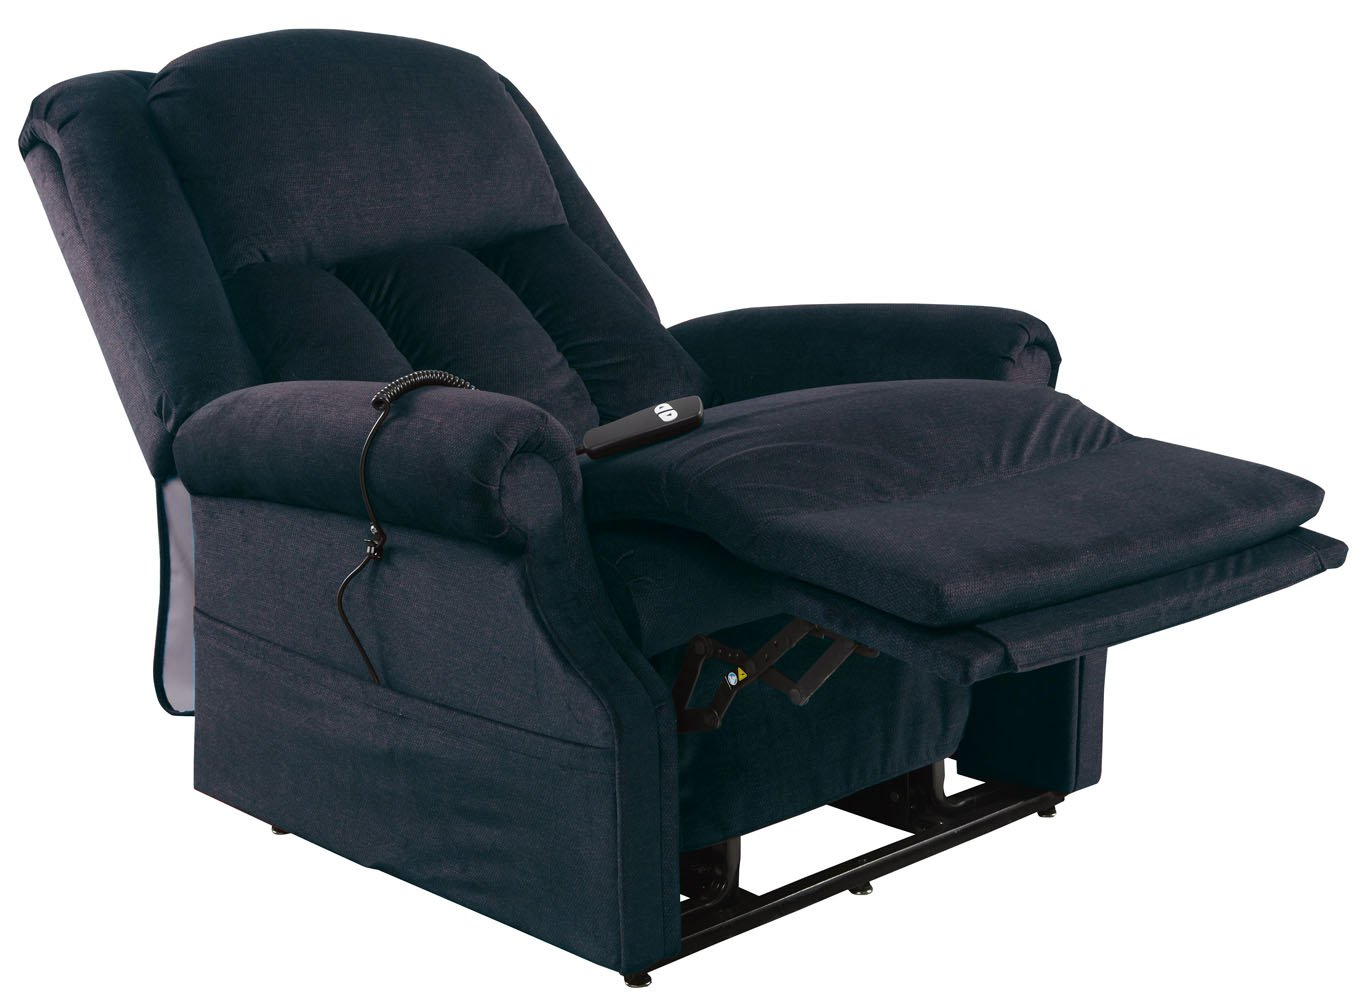 Oversized Mega Motion Recliner  sc 1 st  For Big And Heavy People & Big u0026 Oversized Big Man Recliners | For Big And Heavy People islam-shia.org